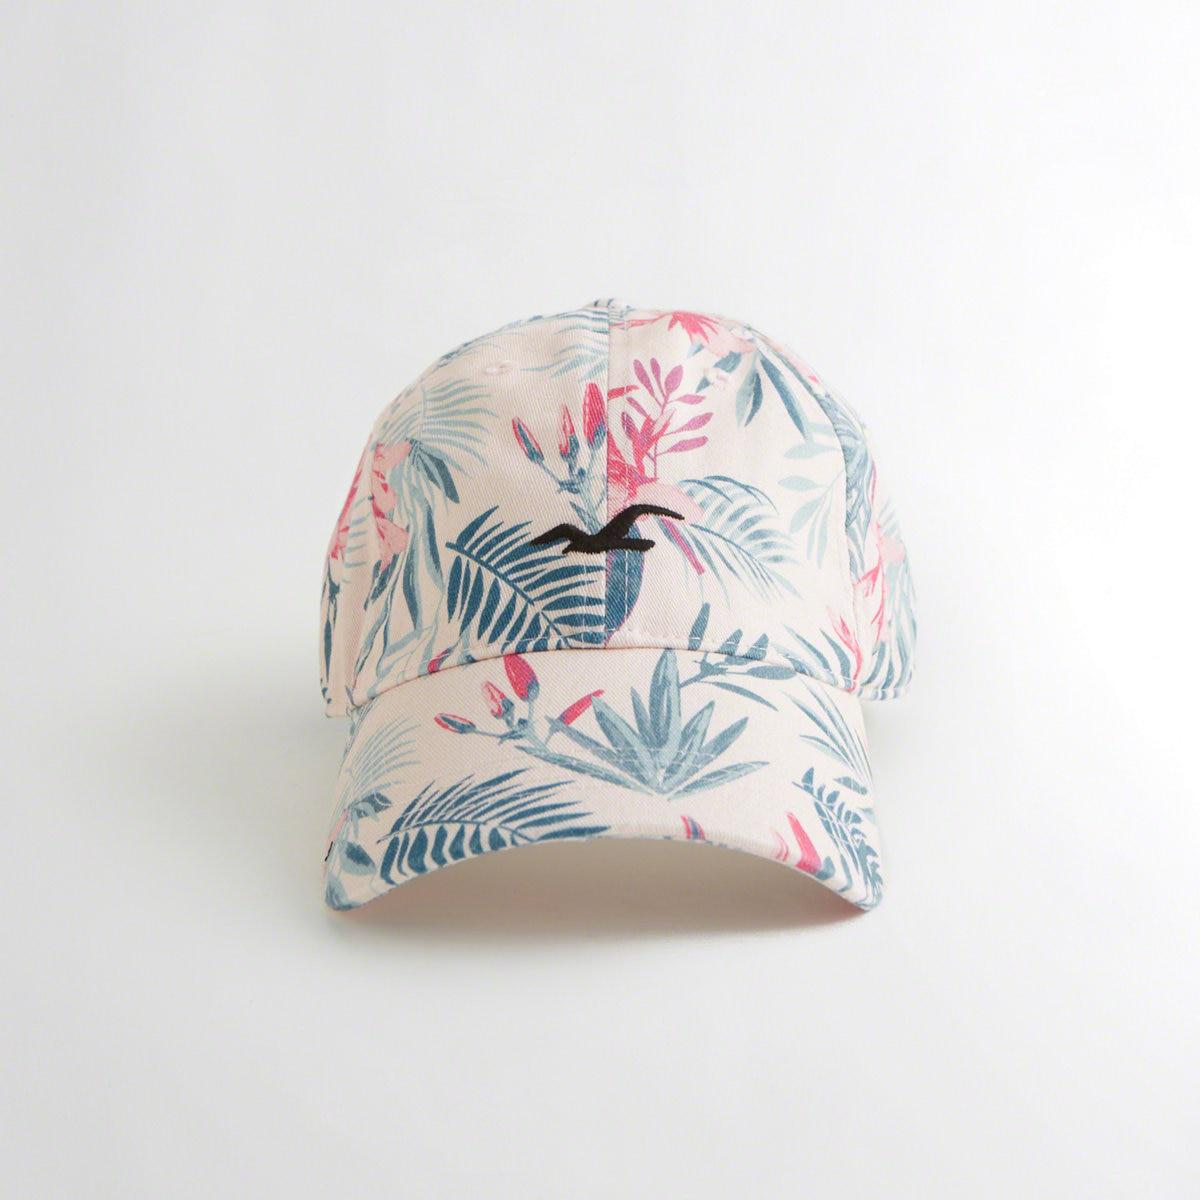 b97bd748791 Lyst - Hollister Guys Floral Twill Dad Hat From Hollister in Pink ...